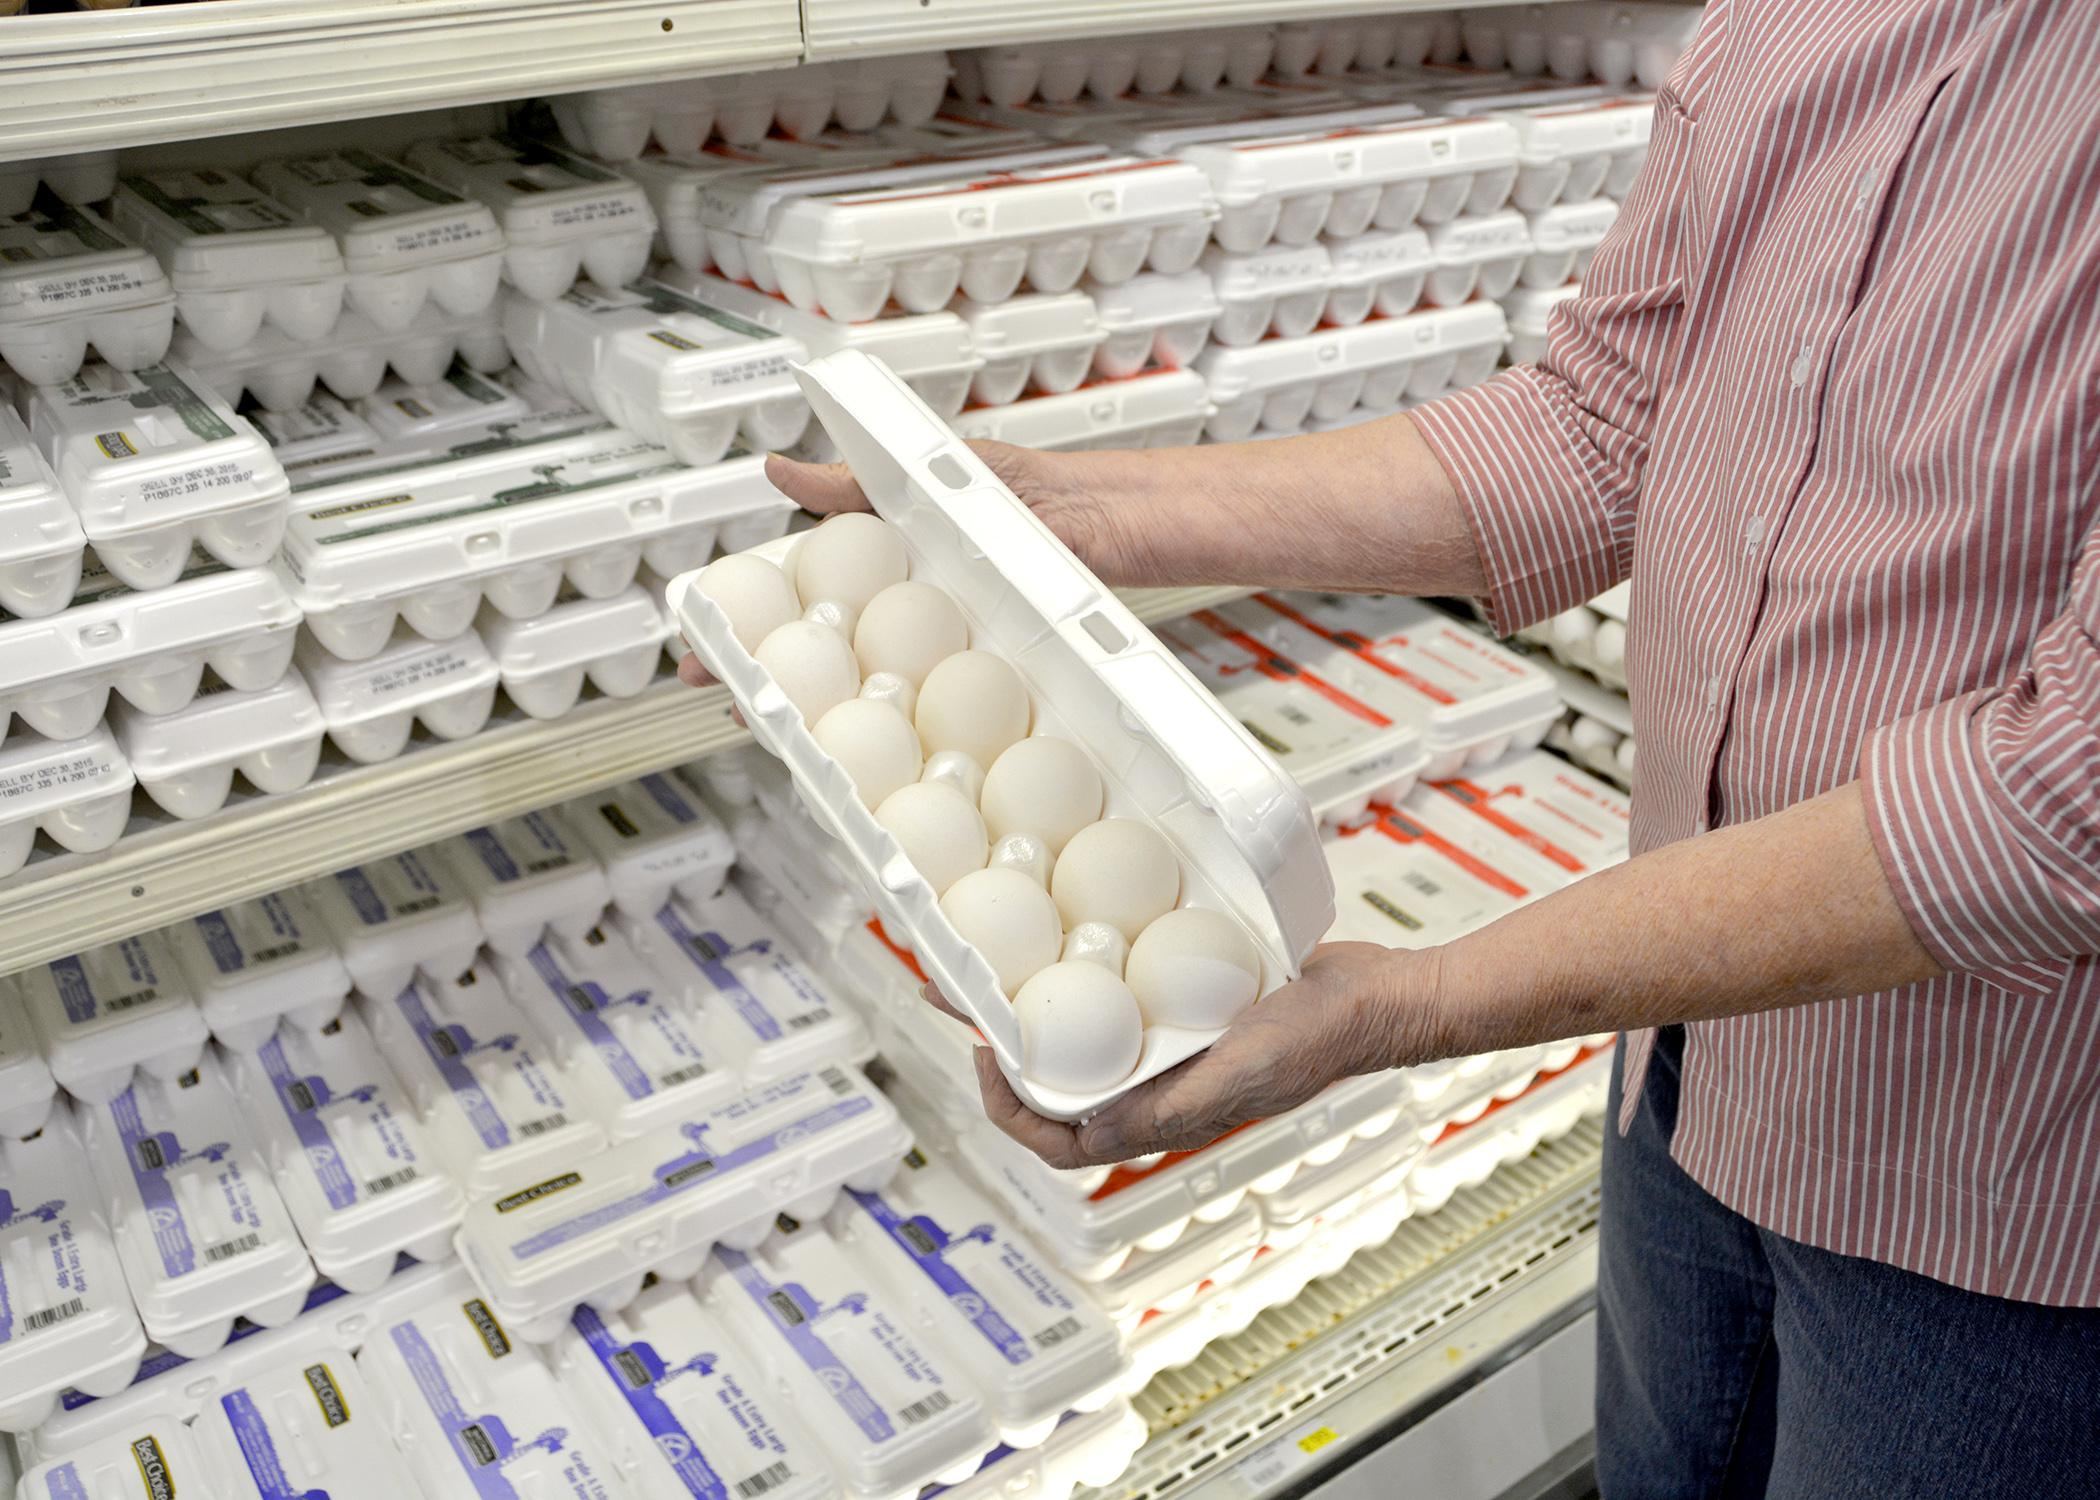 Mississippi did not have a case of avian influenza in 2015, but consumers still had to pay more for eggs following outbreaks on egg-producing farms, primarily in Minnesota, Iowa and surrounding states. Preliminary estimates indicate a 3.4 percent increase in the state's poultry value, which includes an almost 40 percent increase for eggs. (Photo by MSU Extension Service/Linda Breazeale)